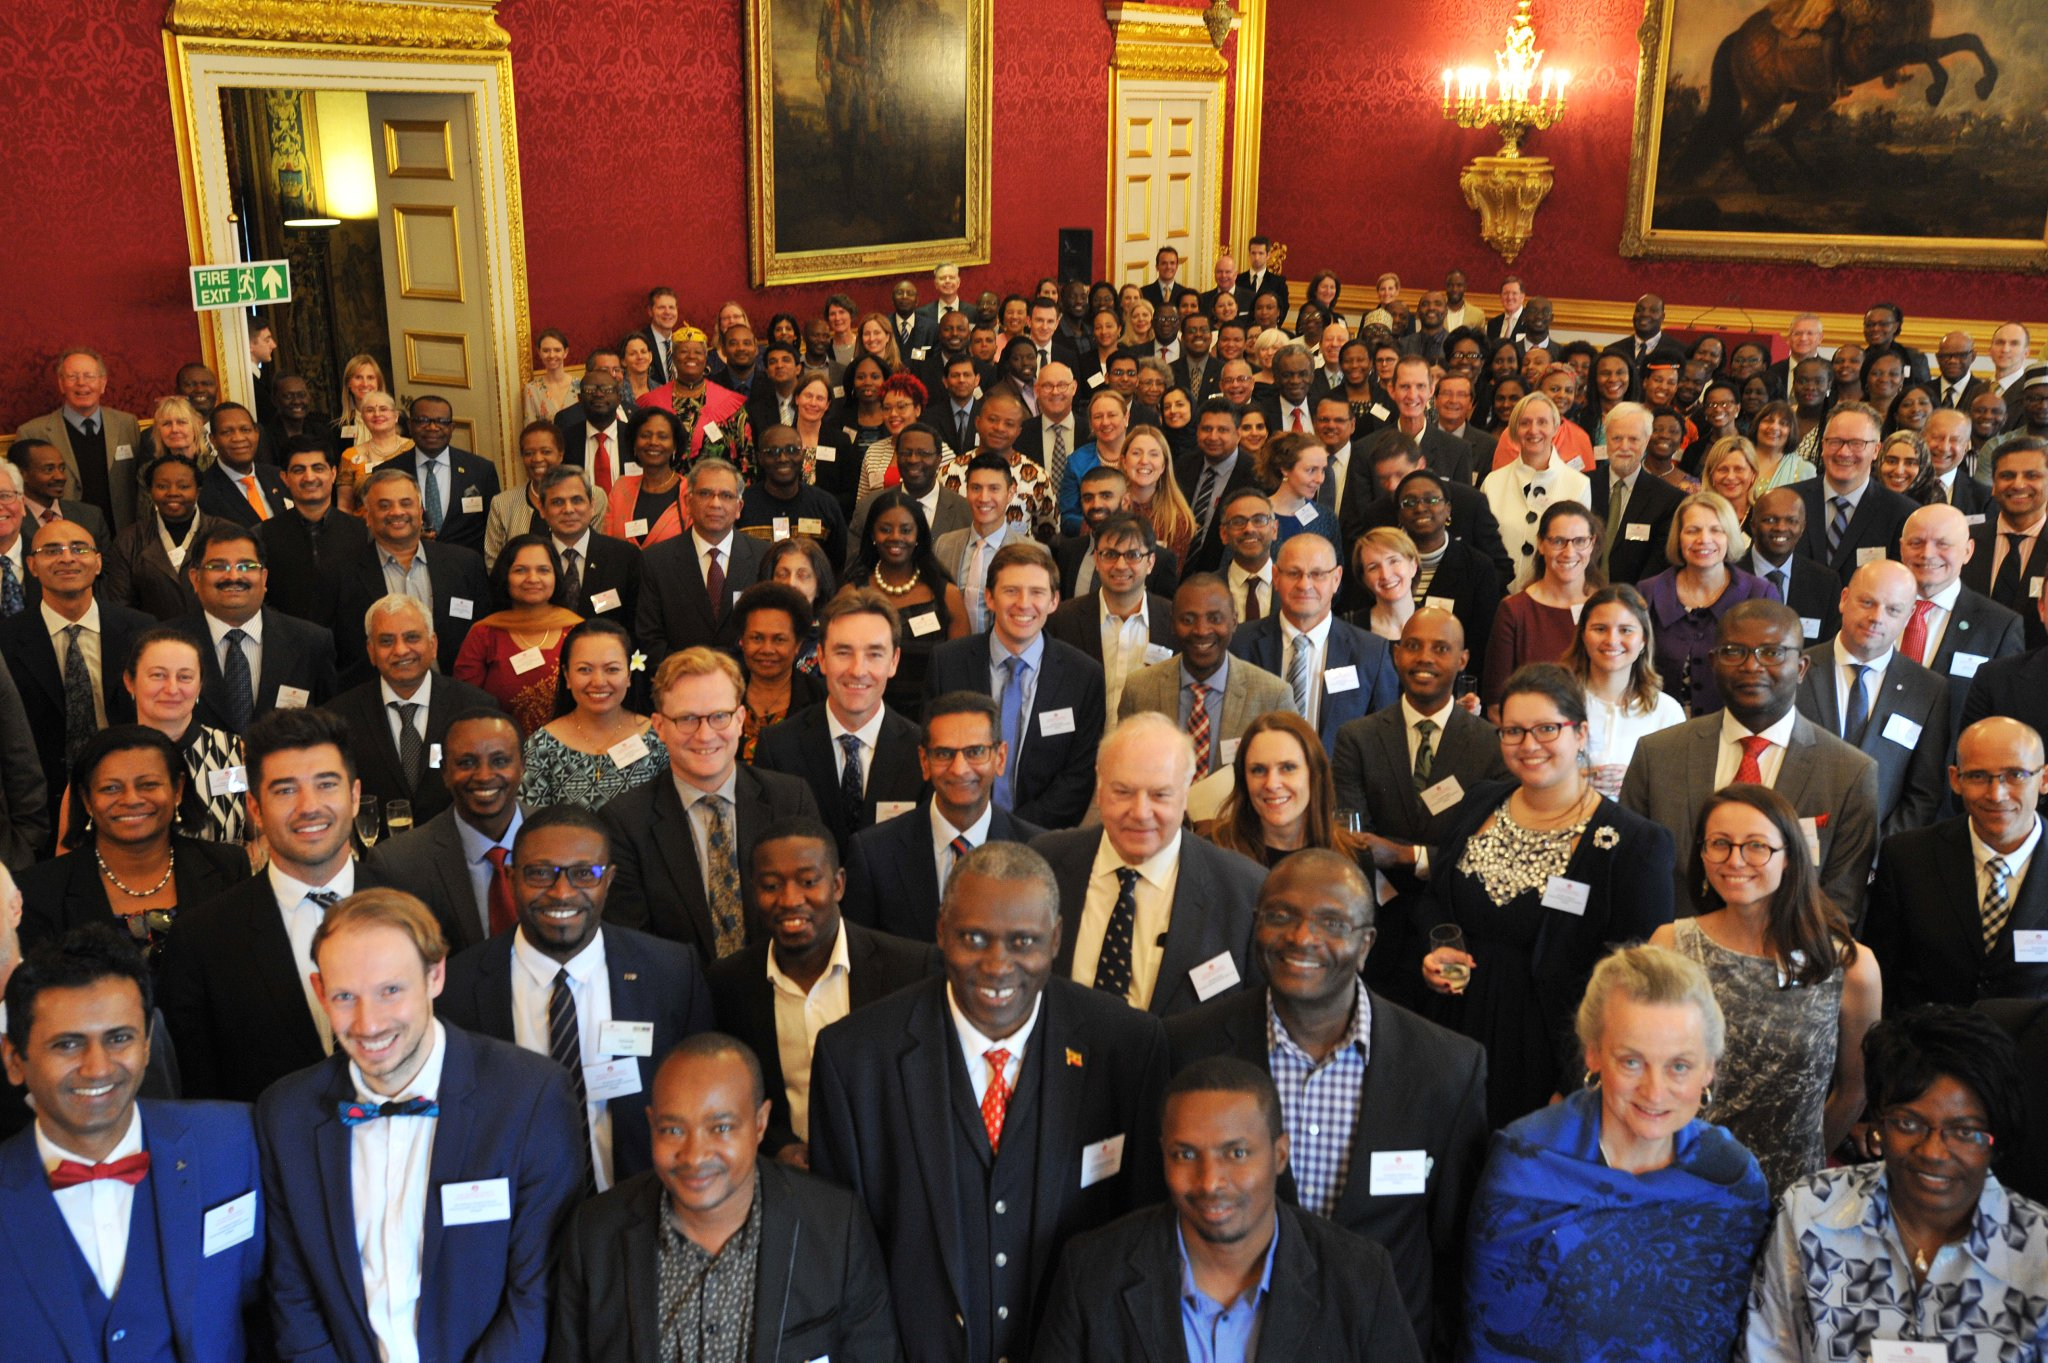 Caption: Commonwealth Eye Health Consortium at St. James's Palace. Credit: The Queen Elizabeth Diamond Jubilee Trust